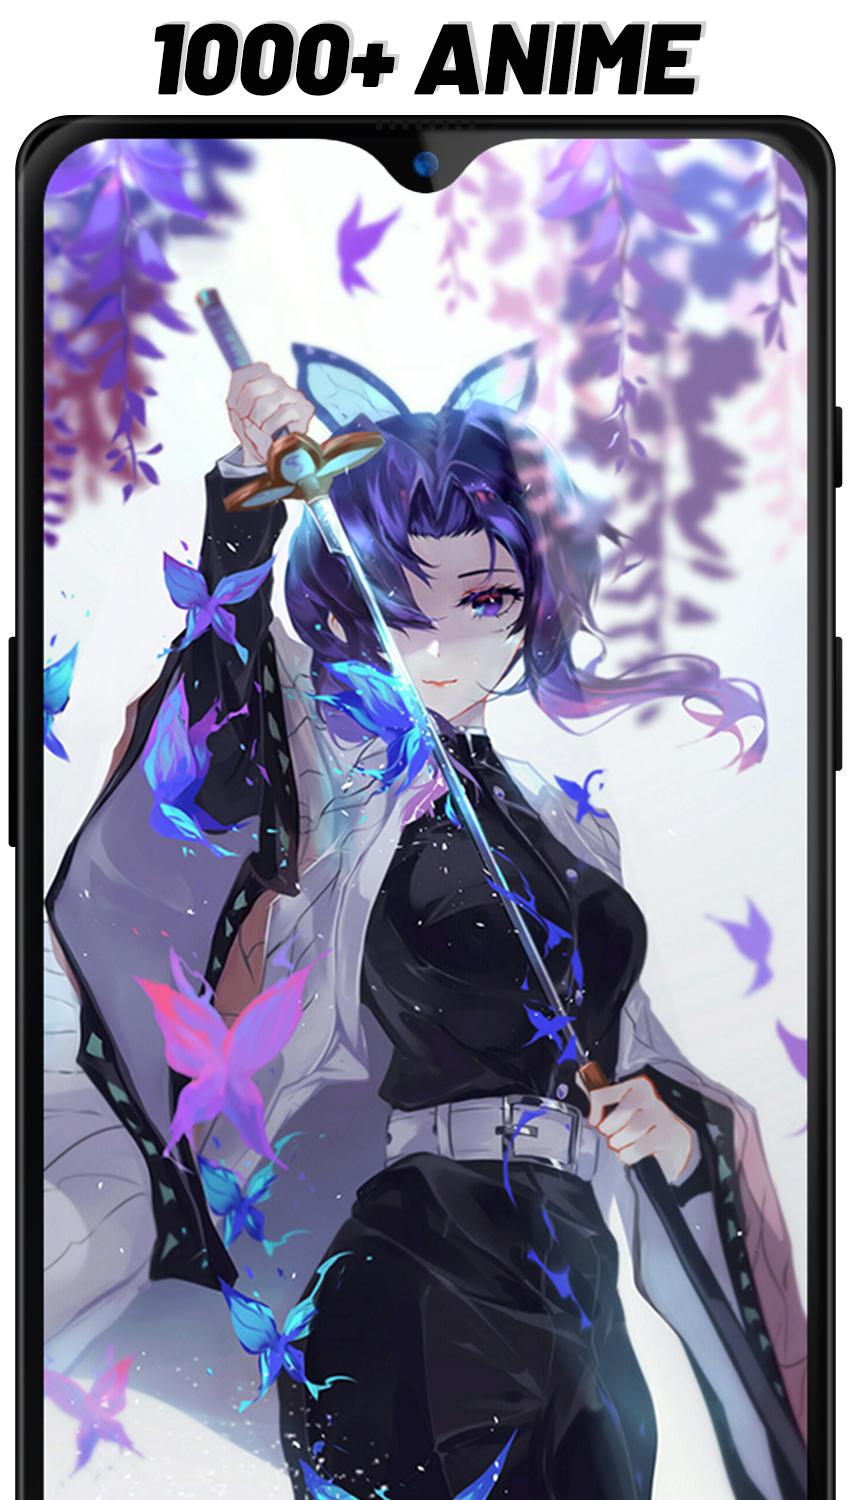 ANIME Live Wallpapers HD/4K + Automatic Changer APK 1.5 ...